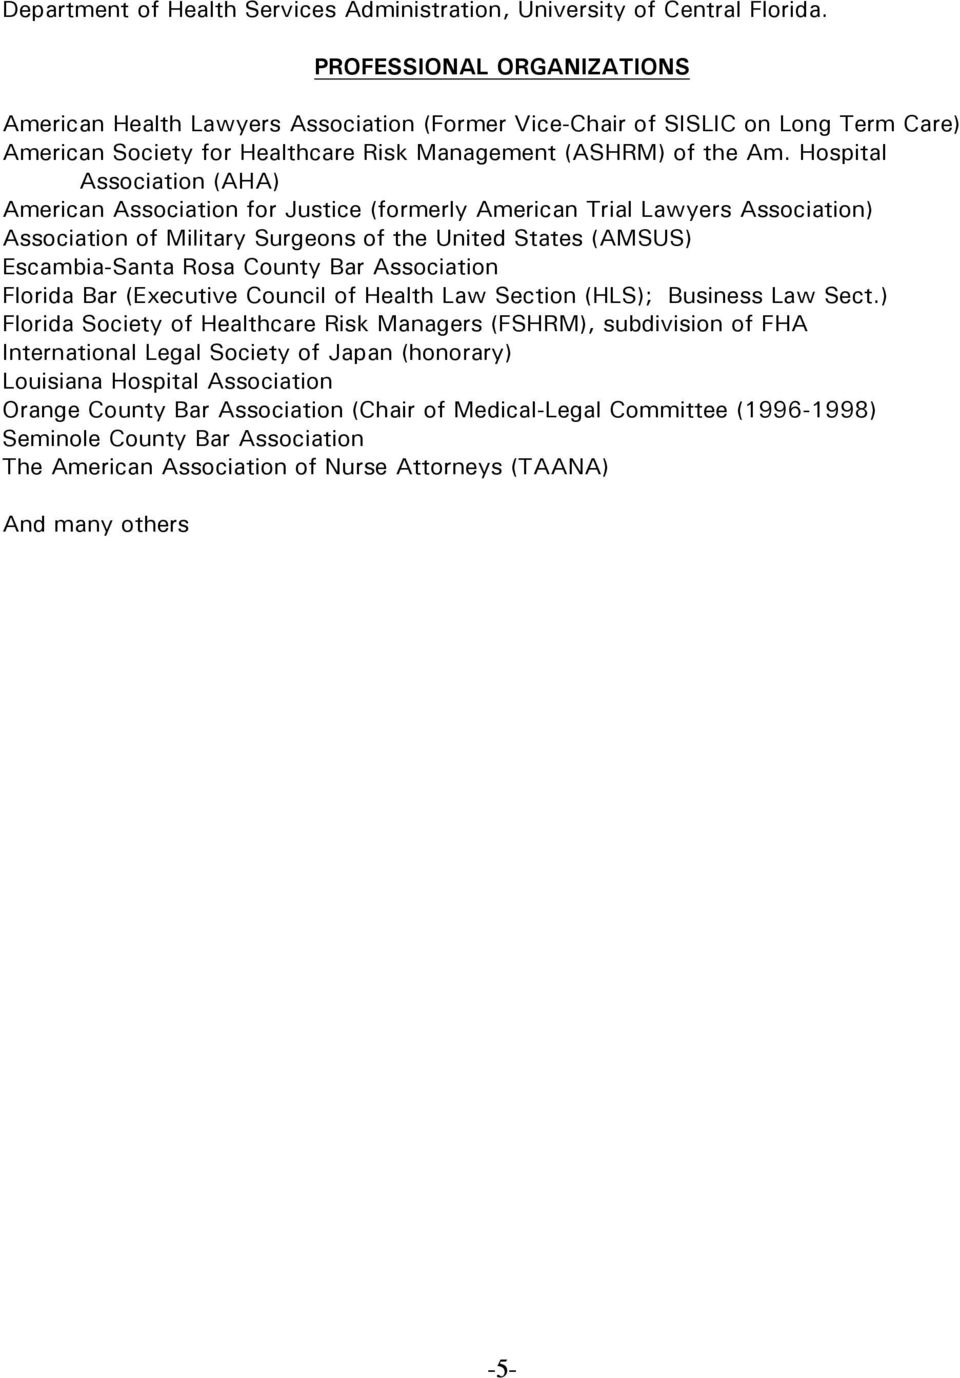 Hospital Association (AHA) American Association for Justice (formerly American Trial Lawyers Association) Association of Military Surgeons of the United States (AMSUS) Escambia-Santa Rosa County Bar